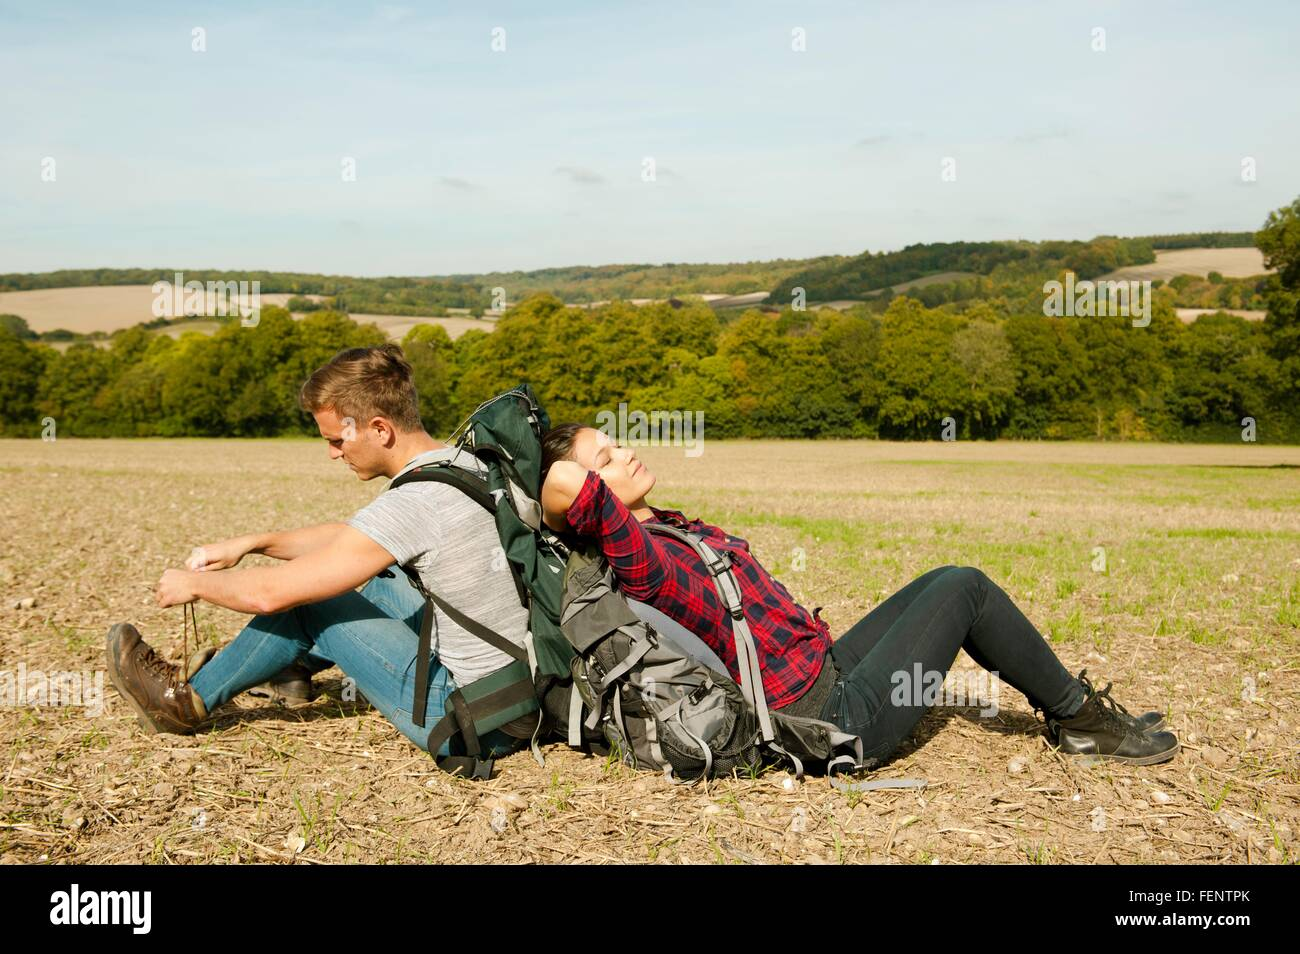 Young hiking couple sitting back to back in field, Great Missenden, Buckinghamshire, U.K - Stock Image